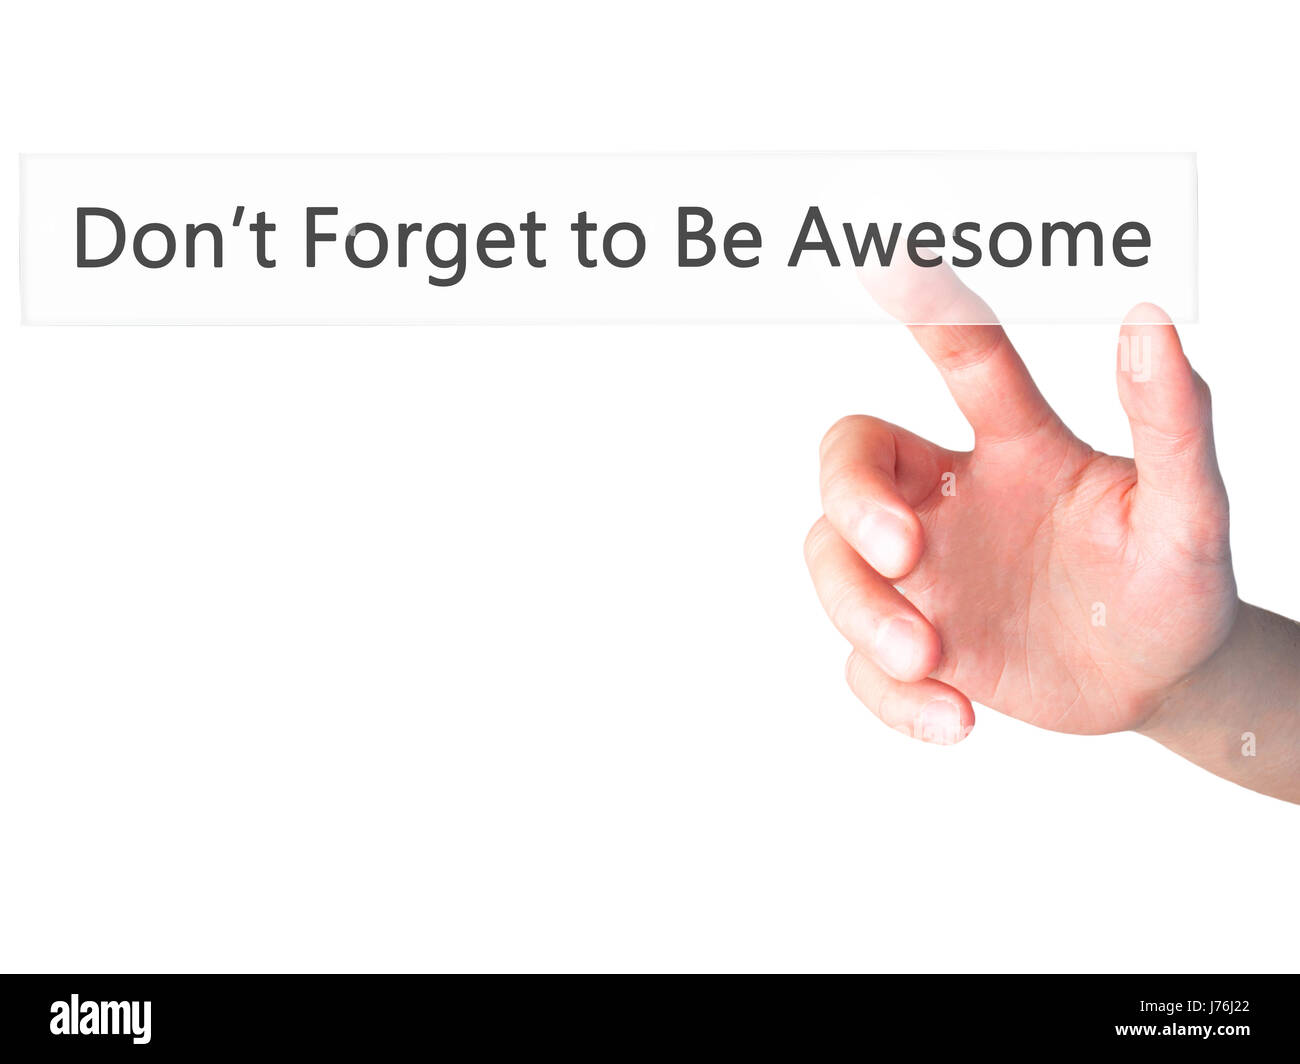 Don't Forget to Be Awesome - Hand pressing a button on blurred background concept . Business, technology, internet - Stock Image